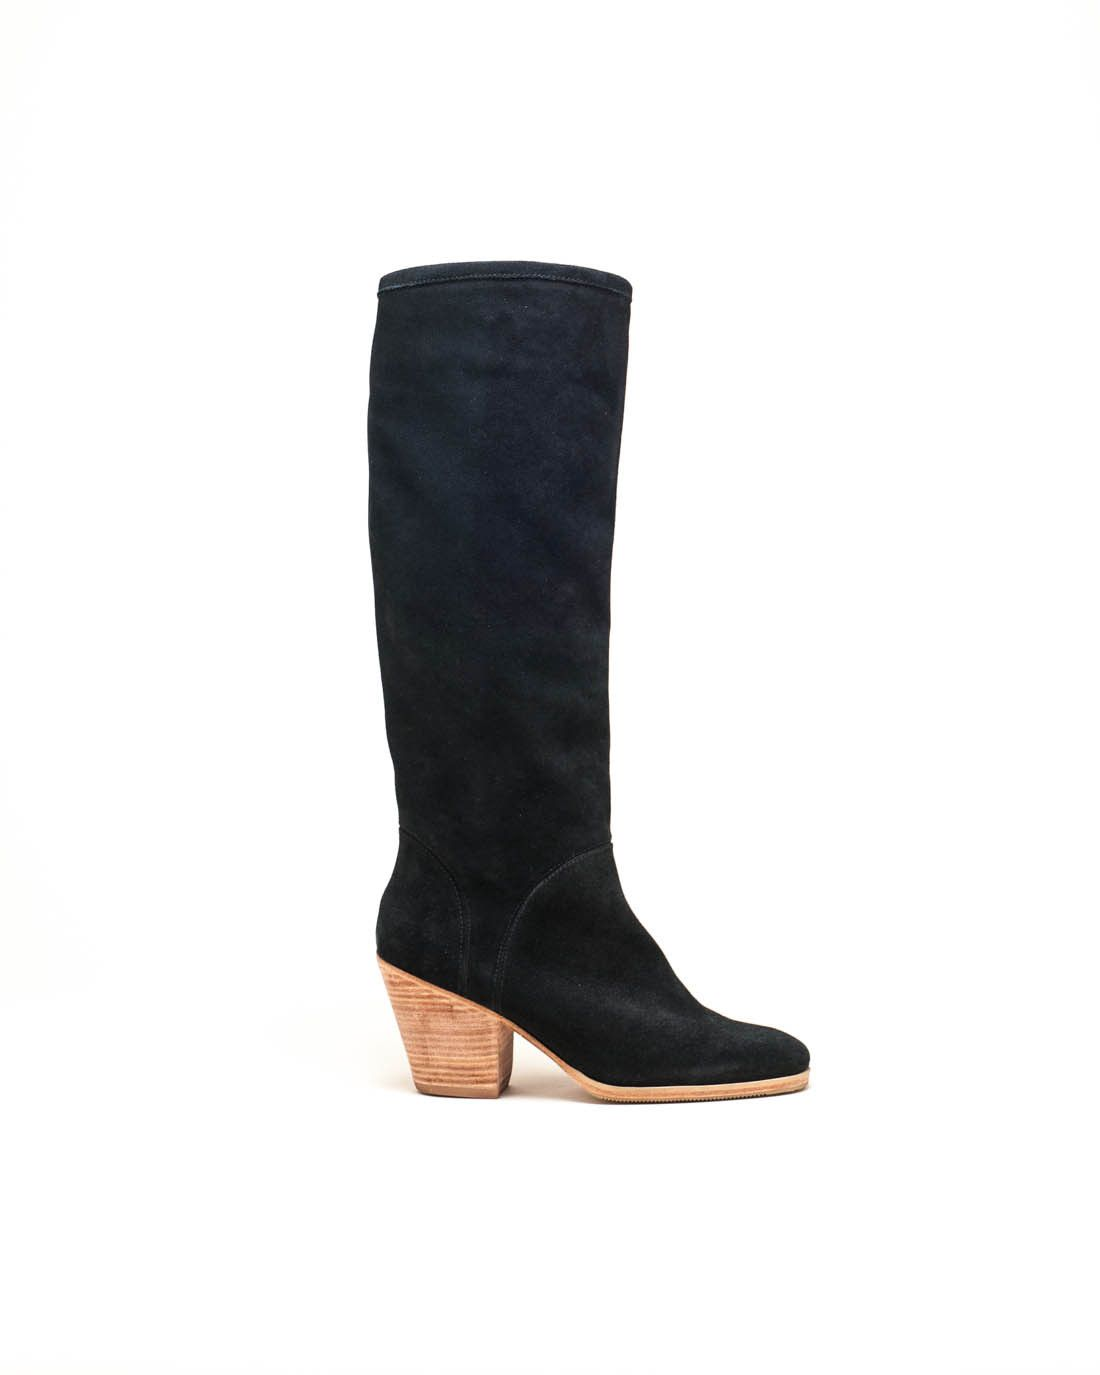 Carrier Boot in Black Nubuck By Rachel Comey